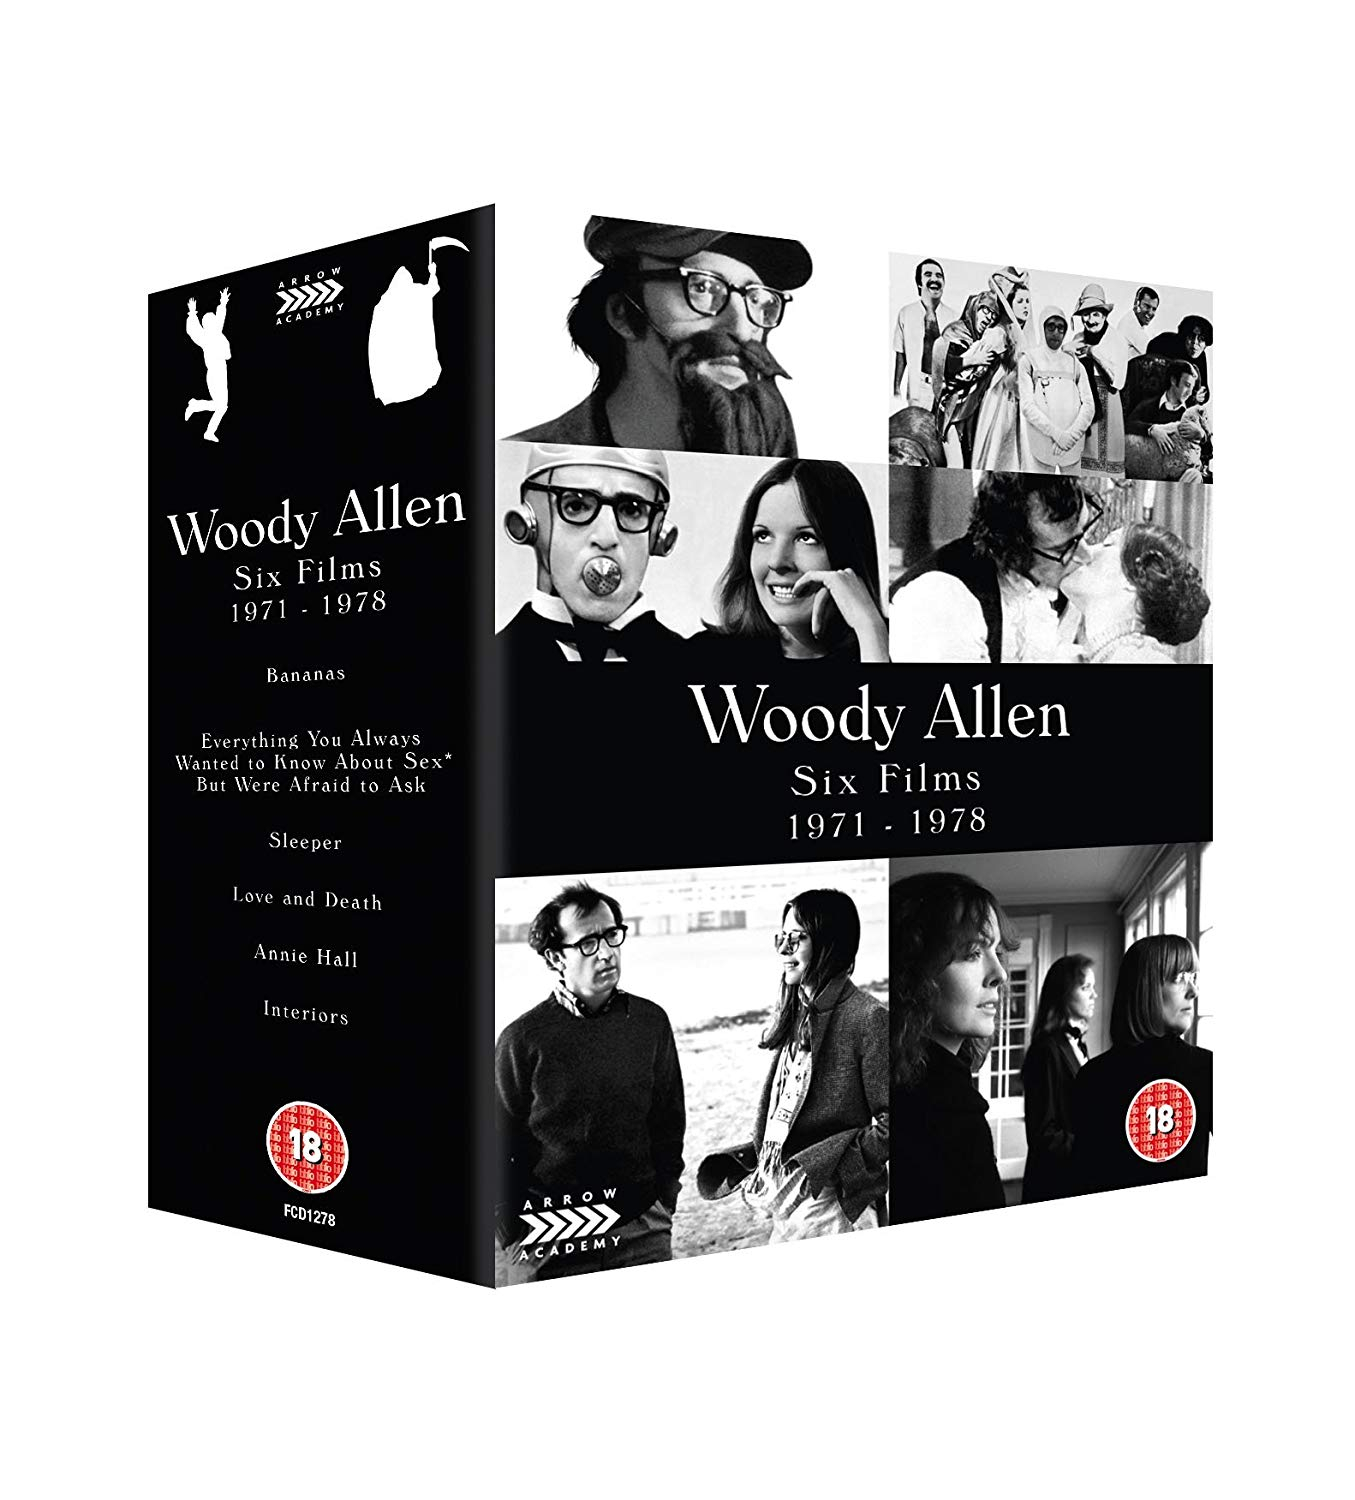 Buy Woody Allen: Six Films 1971-1978